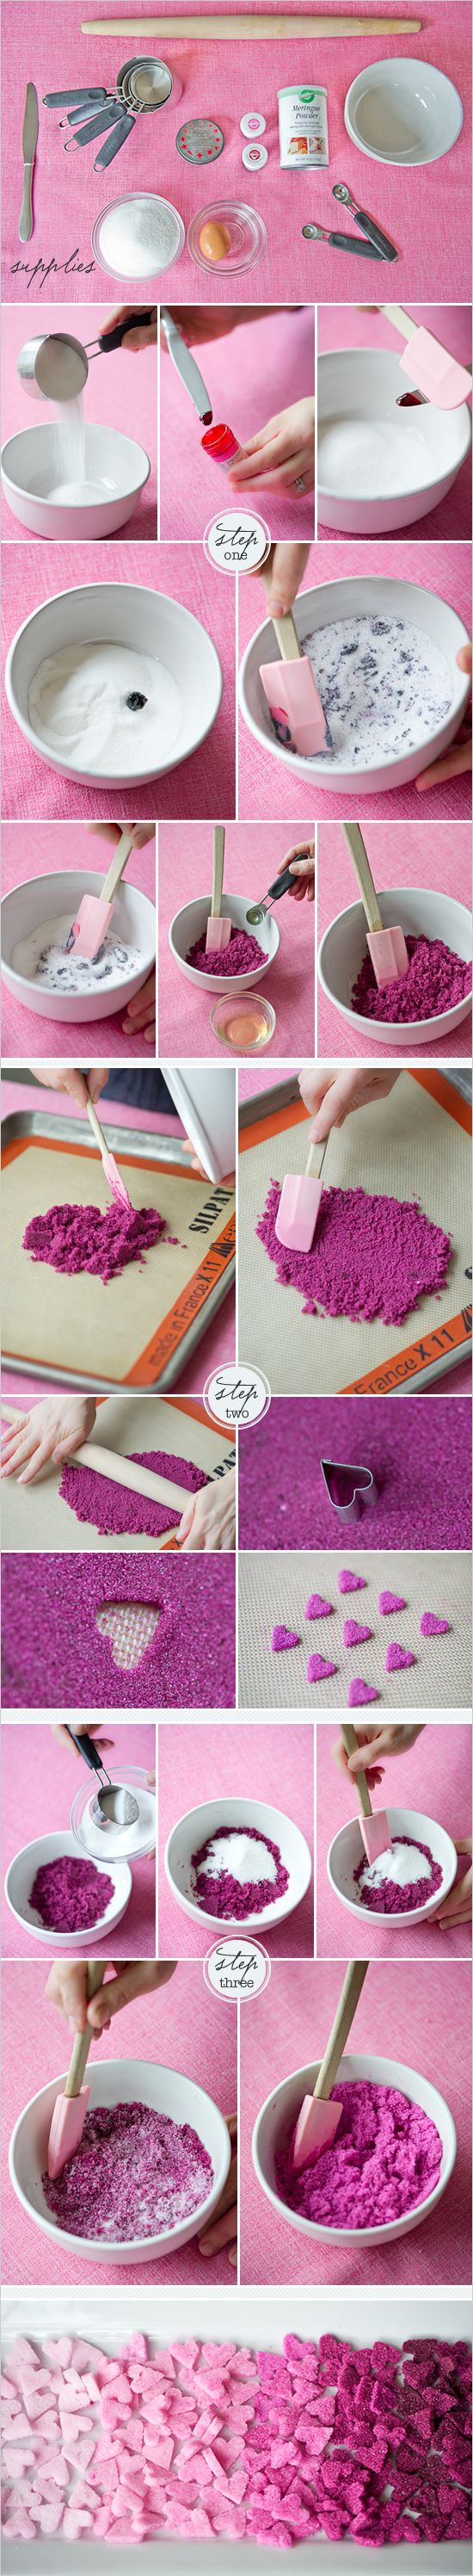 diy ombre sugar hearts